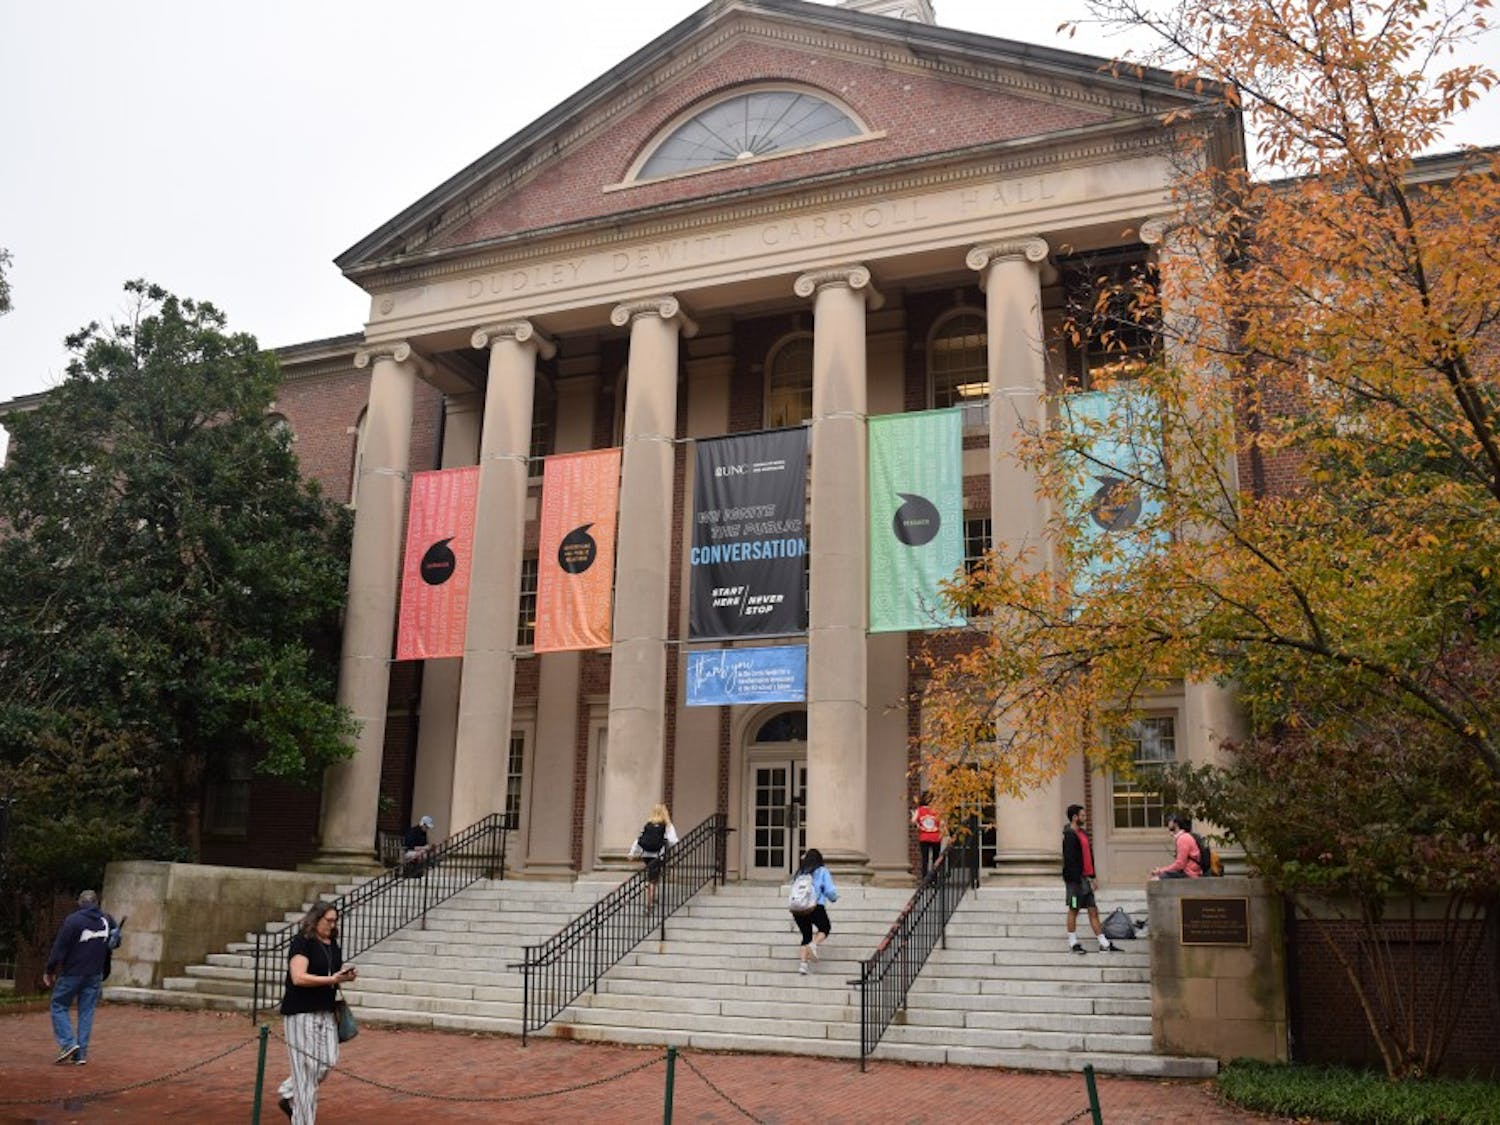 Carroll Hall is the home of UNC's Hussman School of Journalism and Media.